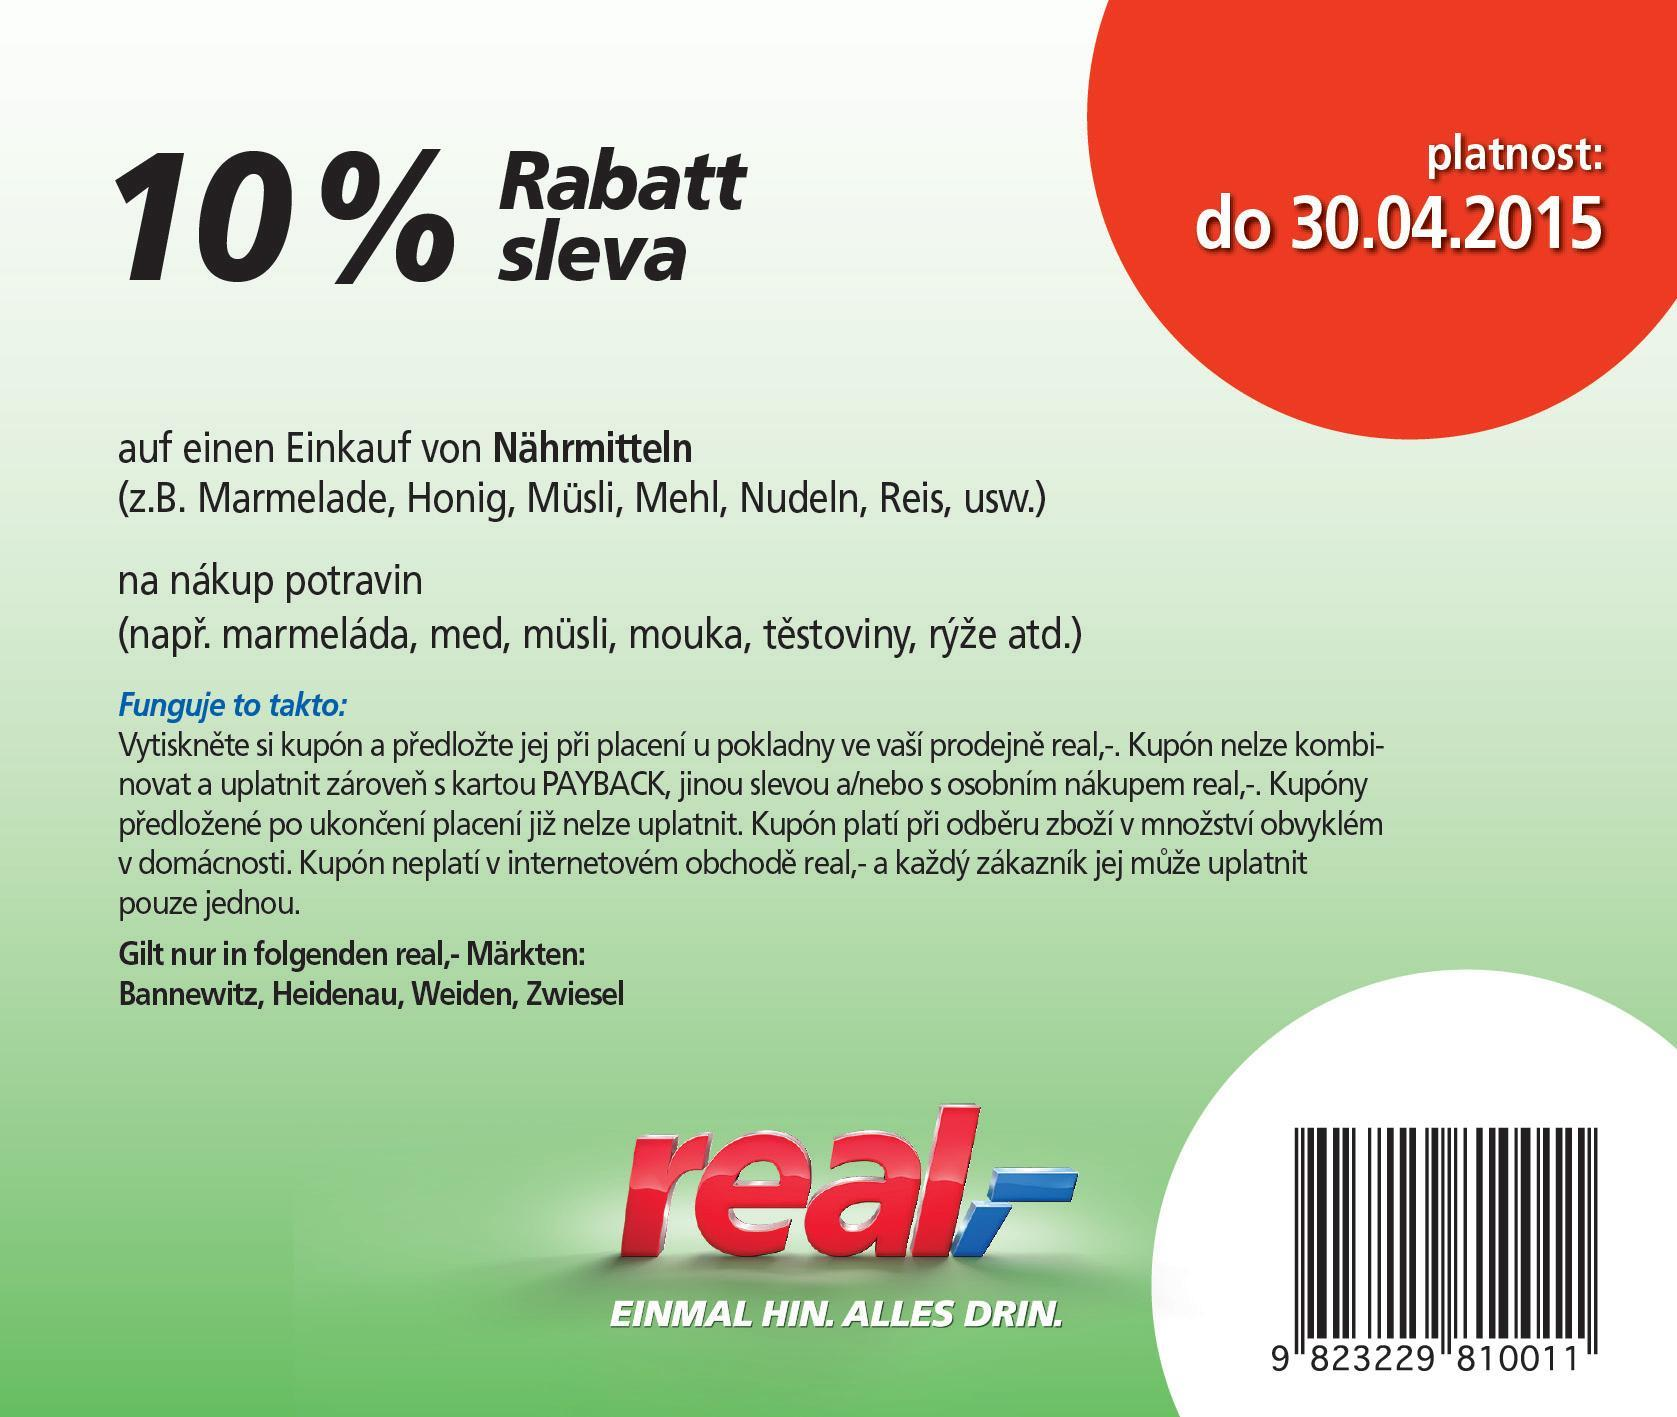 coupons_apr_2015_cz-pmdbyc.jpg